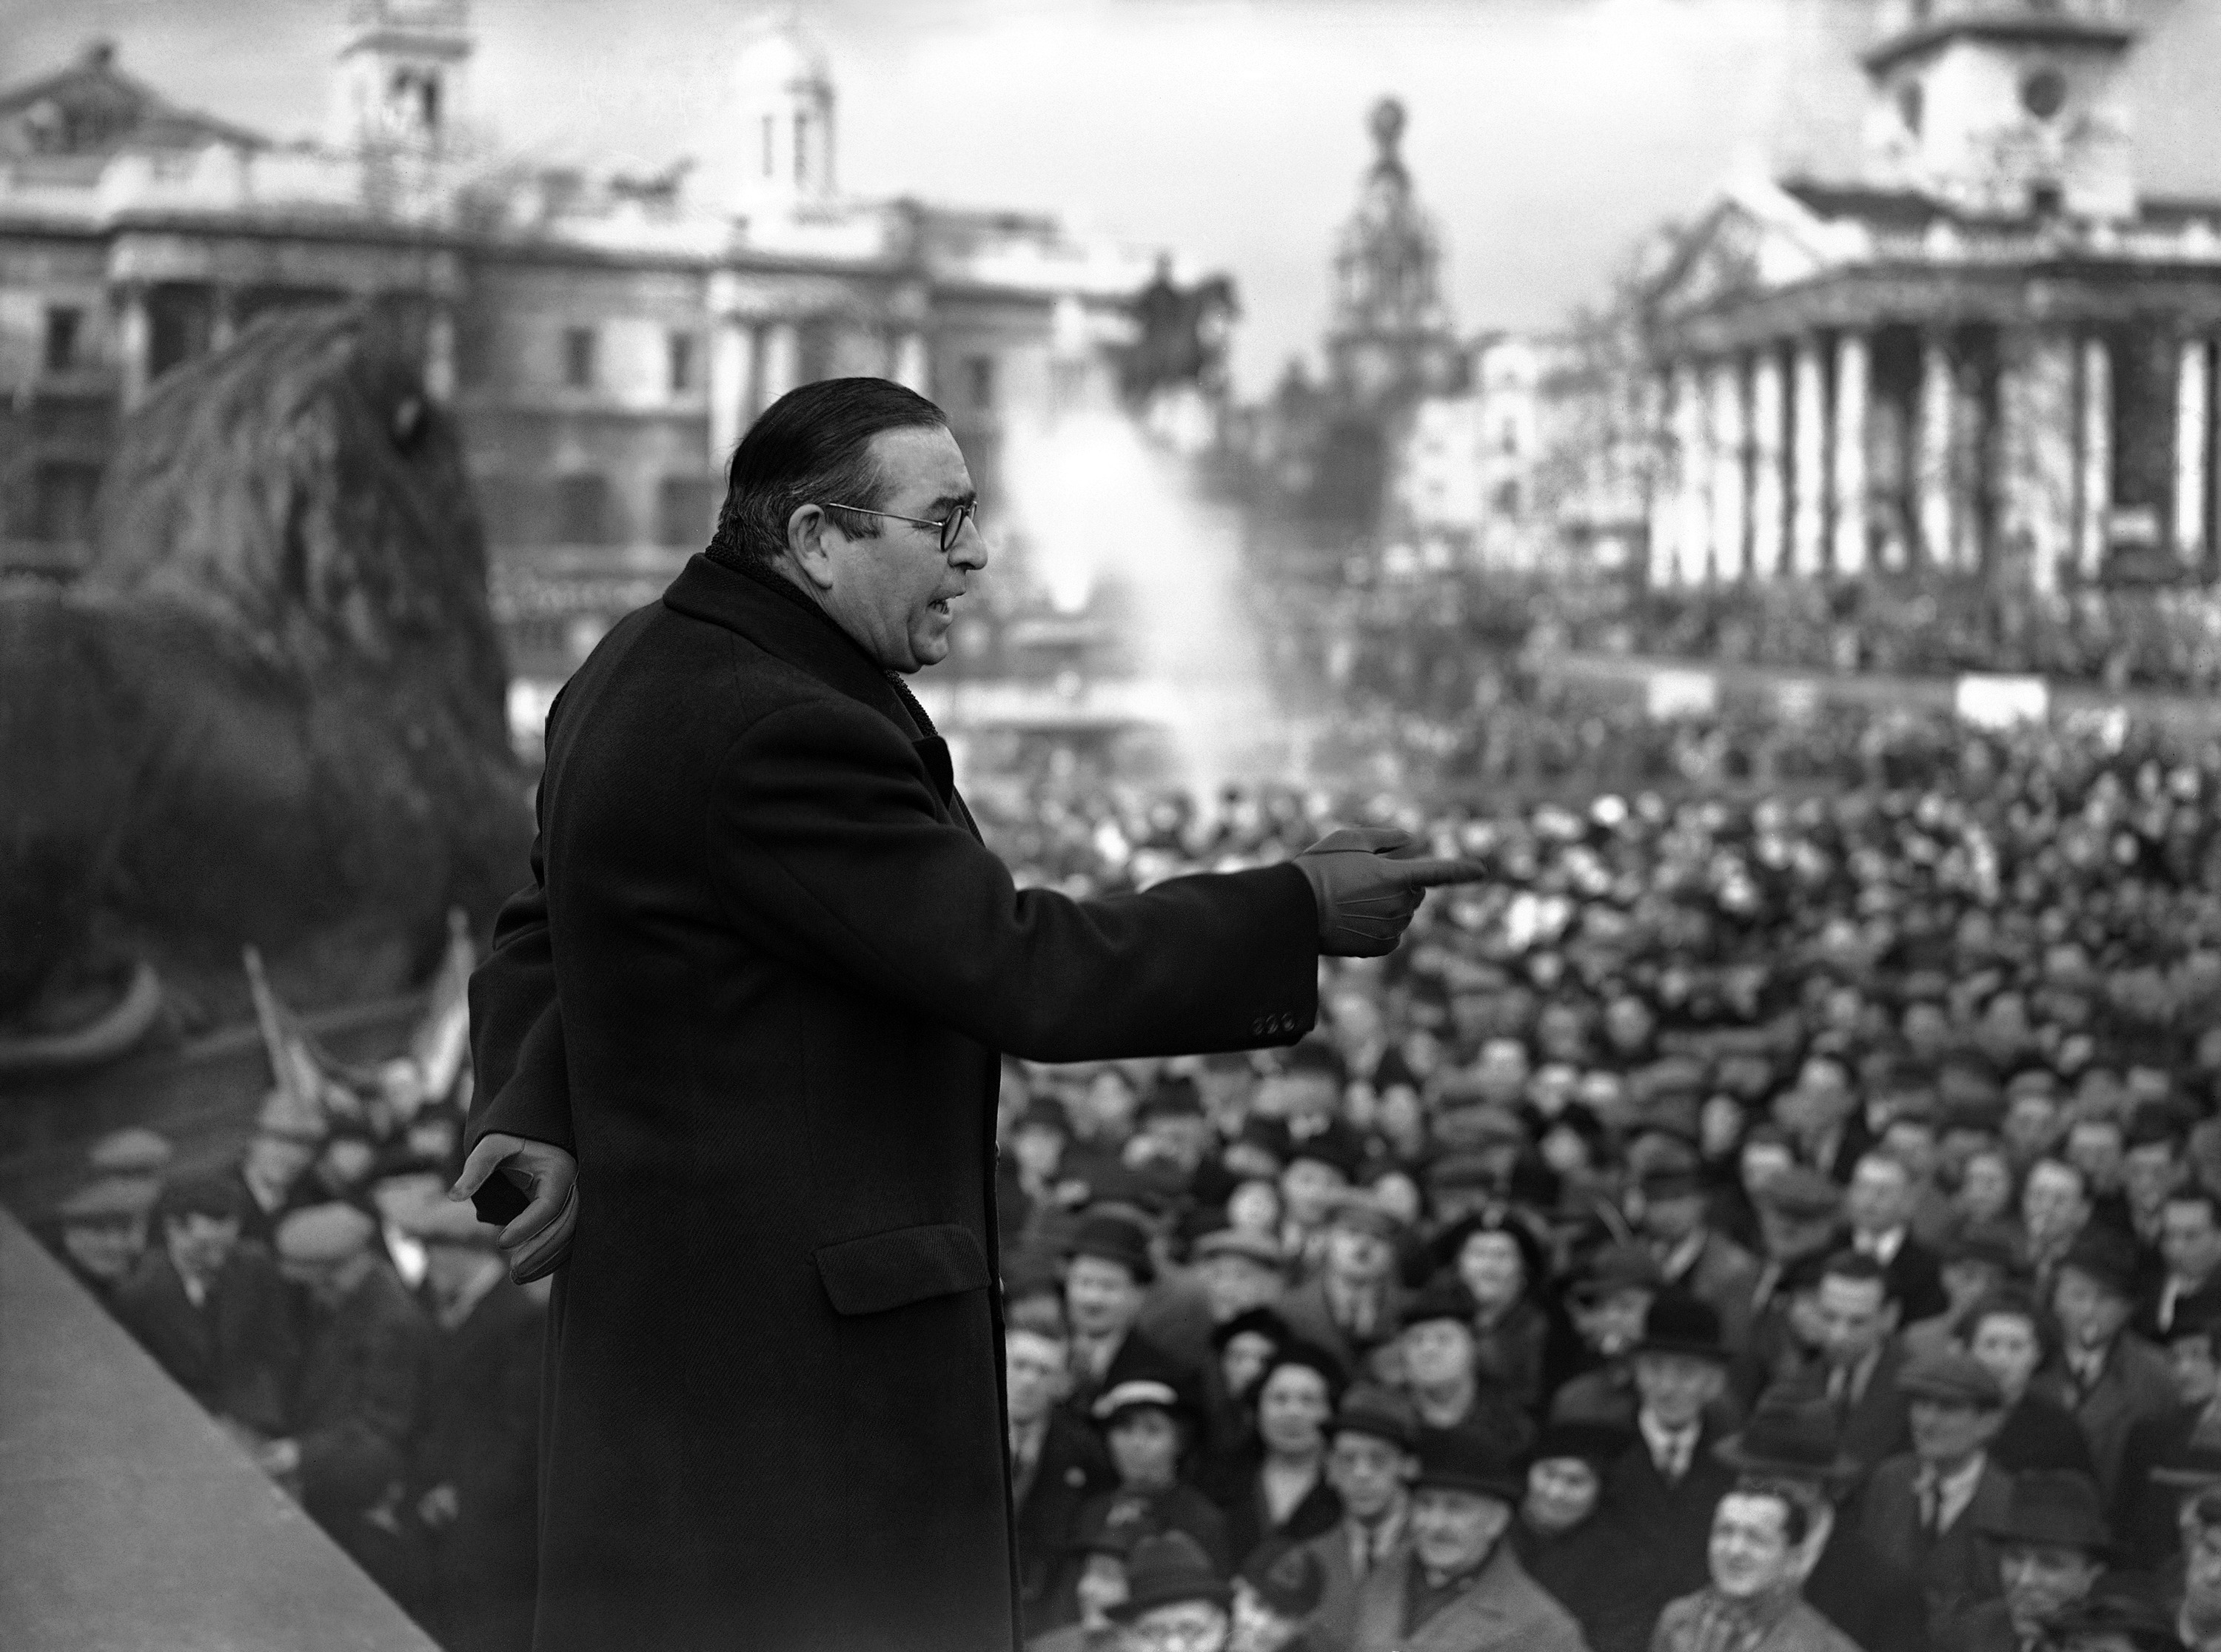 Some twenty members of parliament, peers, political candidates and trade union leaders addressed a mass protest demonstration in Trafalgar Square on February 26, against the betrayal of Spanish democracy. Lord Strabolgi addressing the demonstration in Trafalgar Square, London on Feb. 26, 1939.